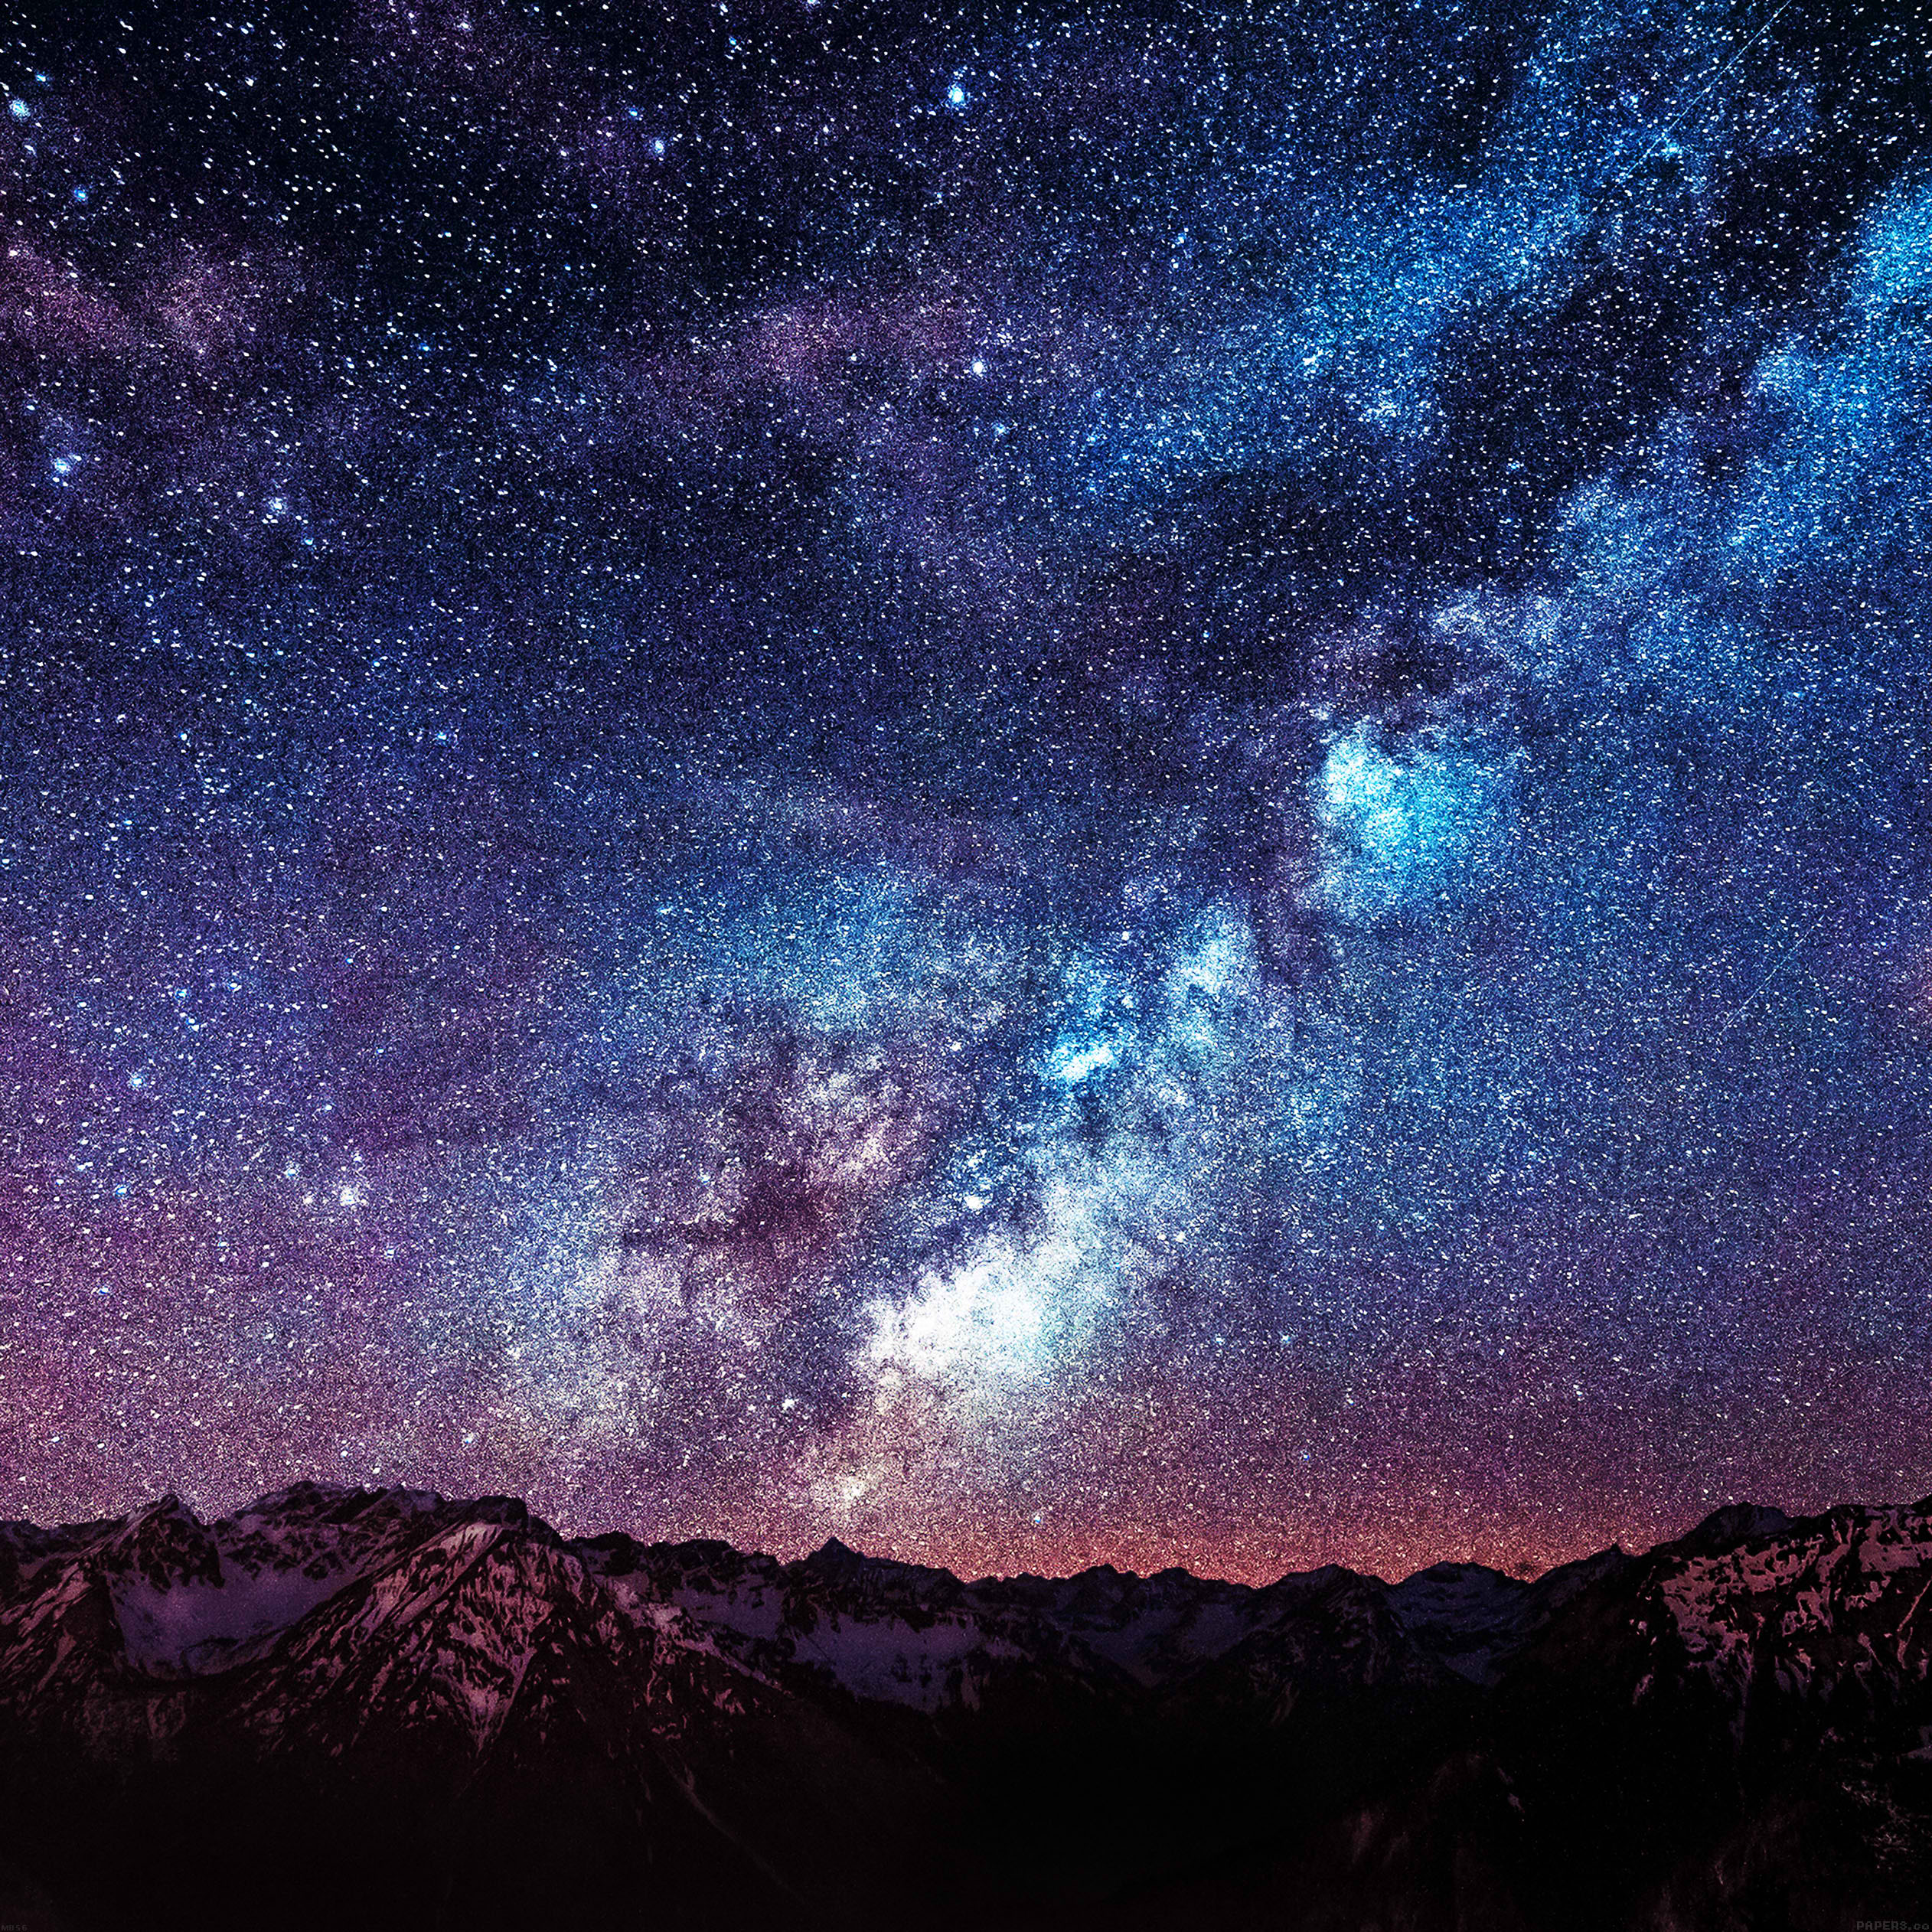 wallpaper-amazing-milkyway-space-mountain-red-9-wallpaper